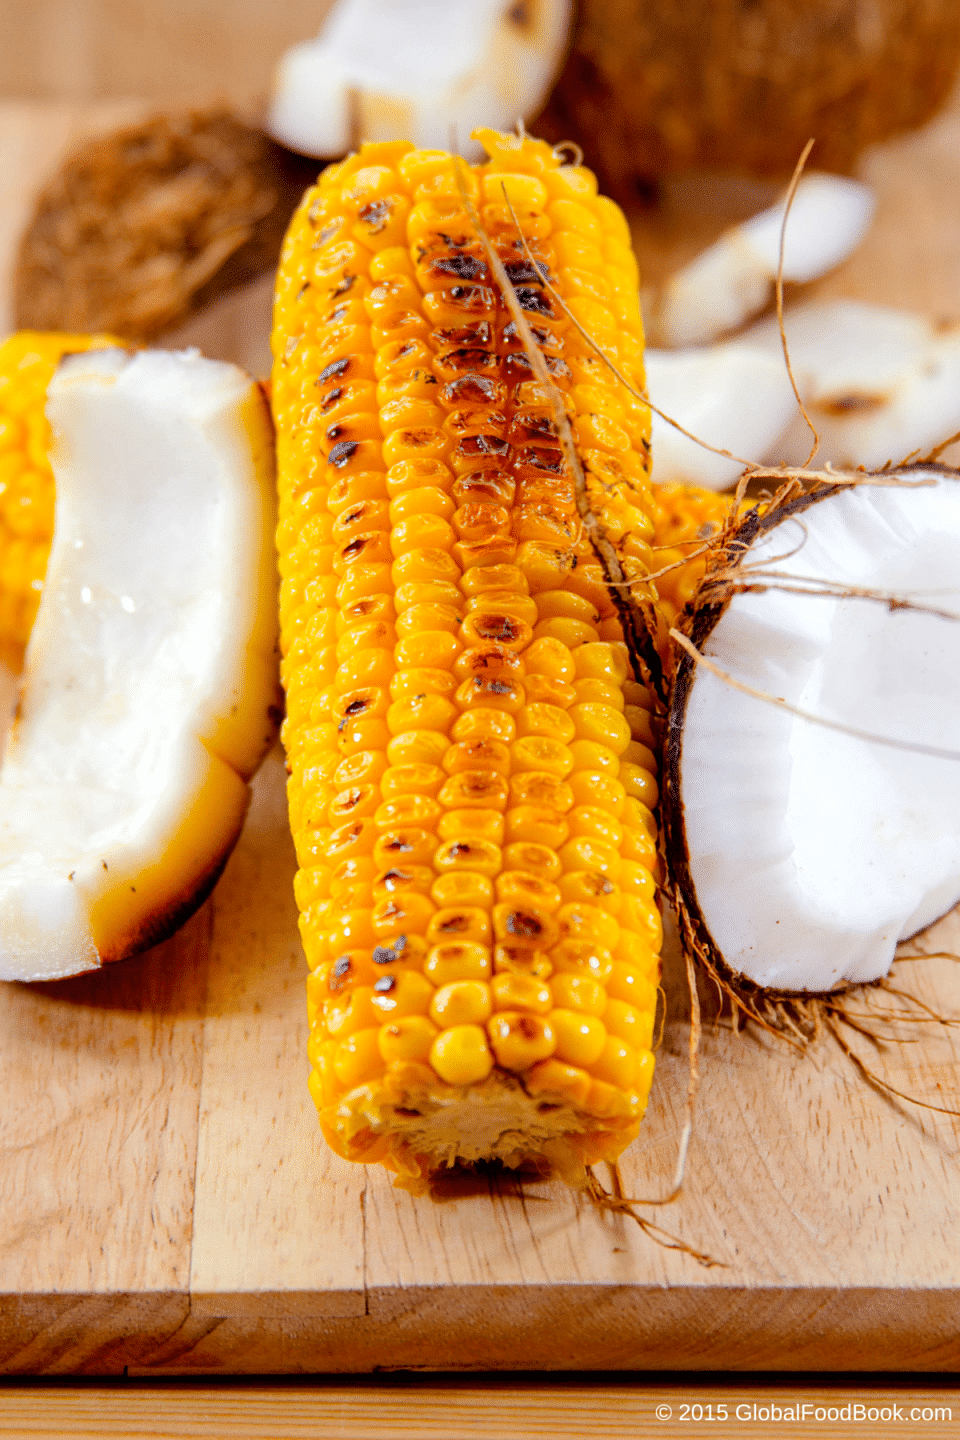 Roasted Maize & Coconut; Photo credit: https://globalfoodbook.com